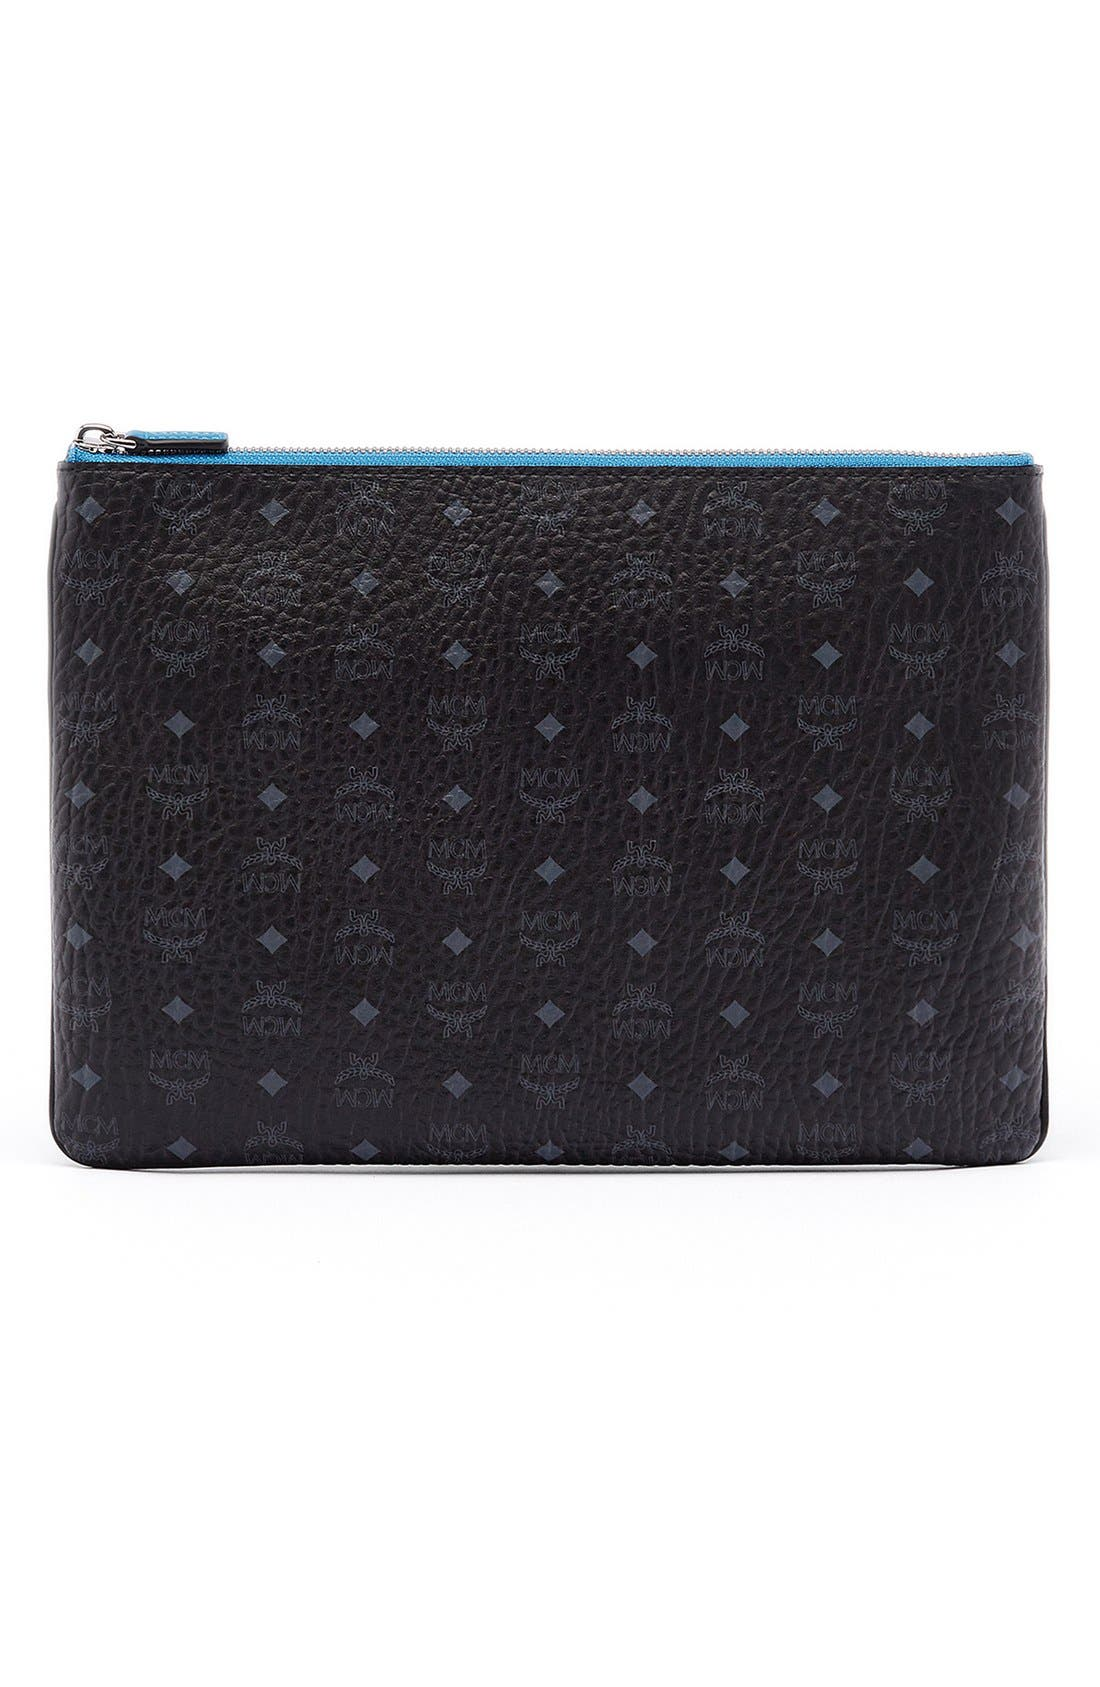 Main Image - MCM Heritage Convertible Coated Canvas Zip Pouch